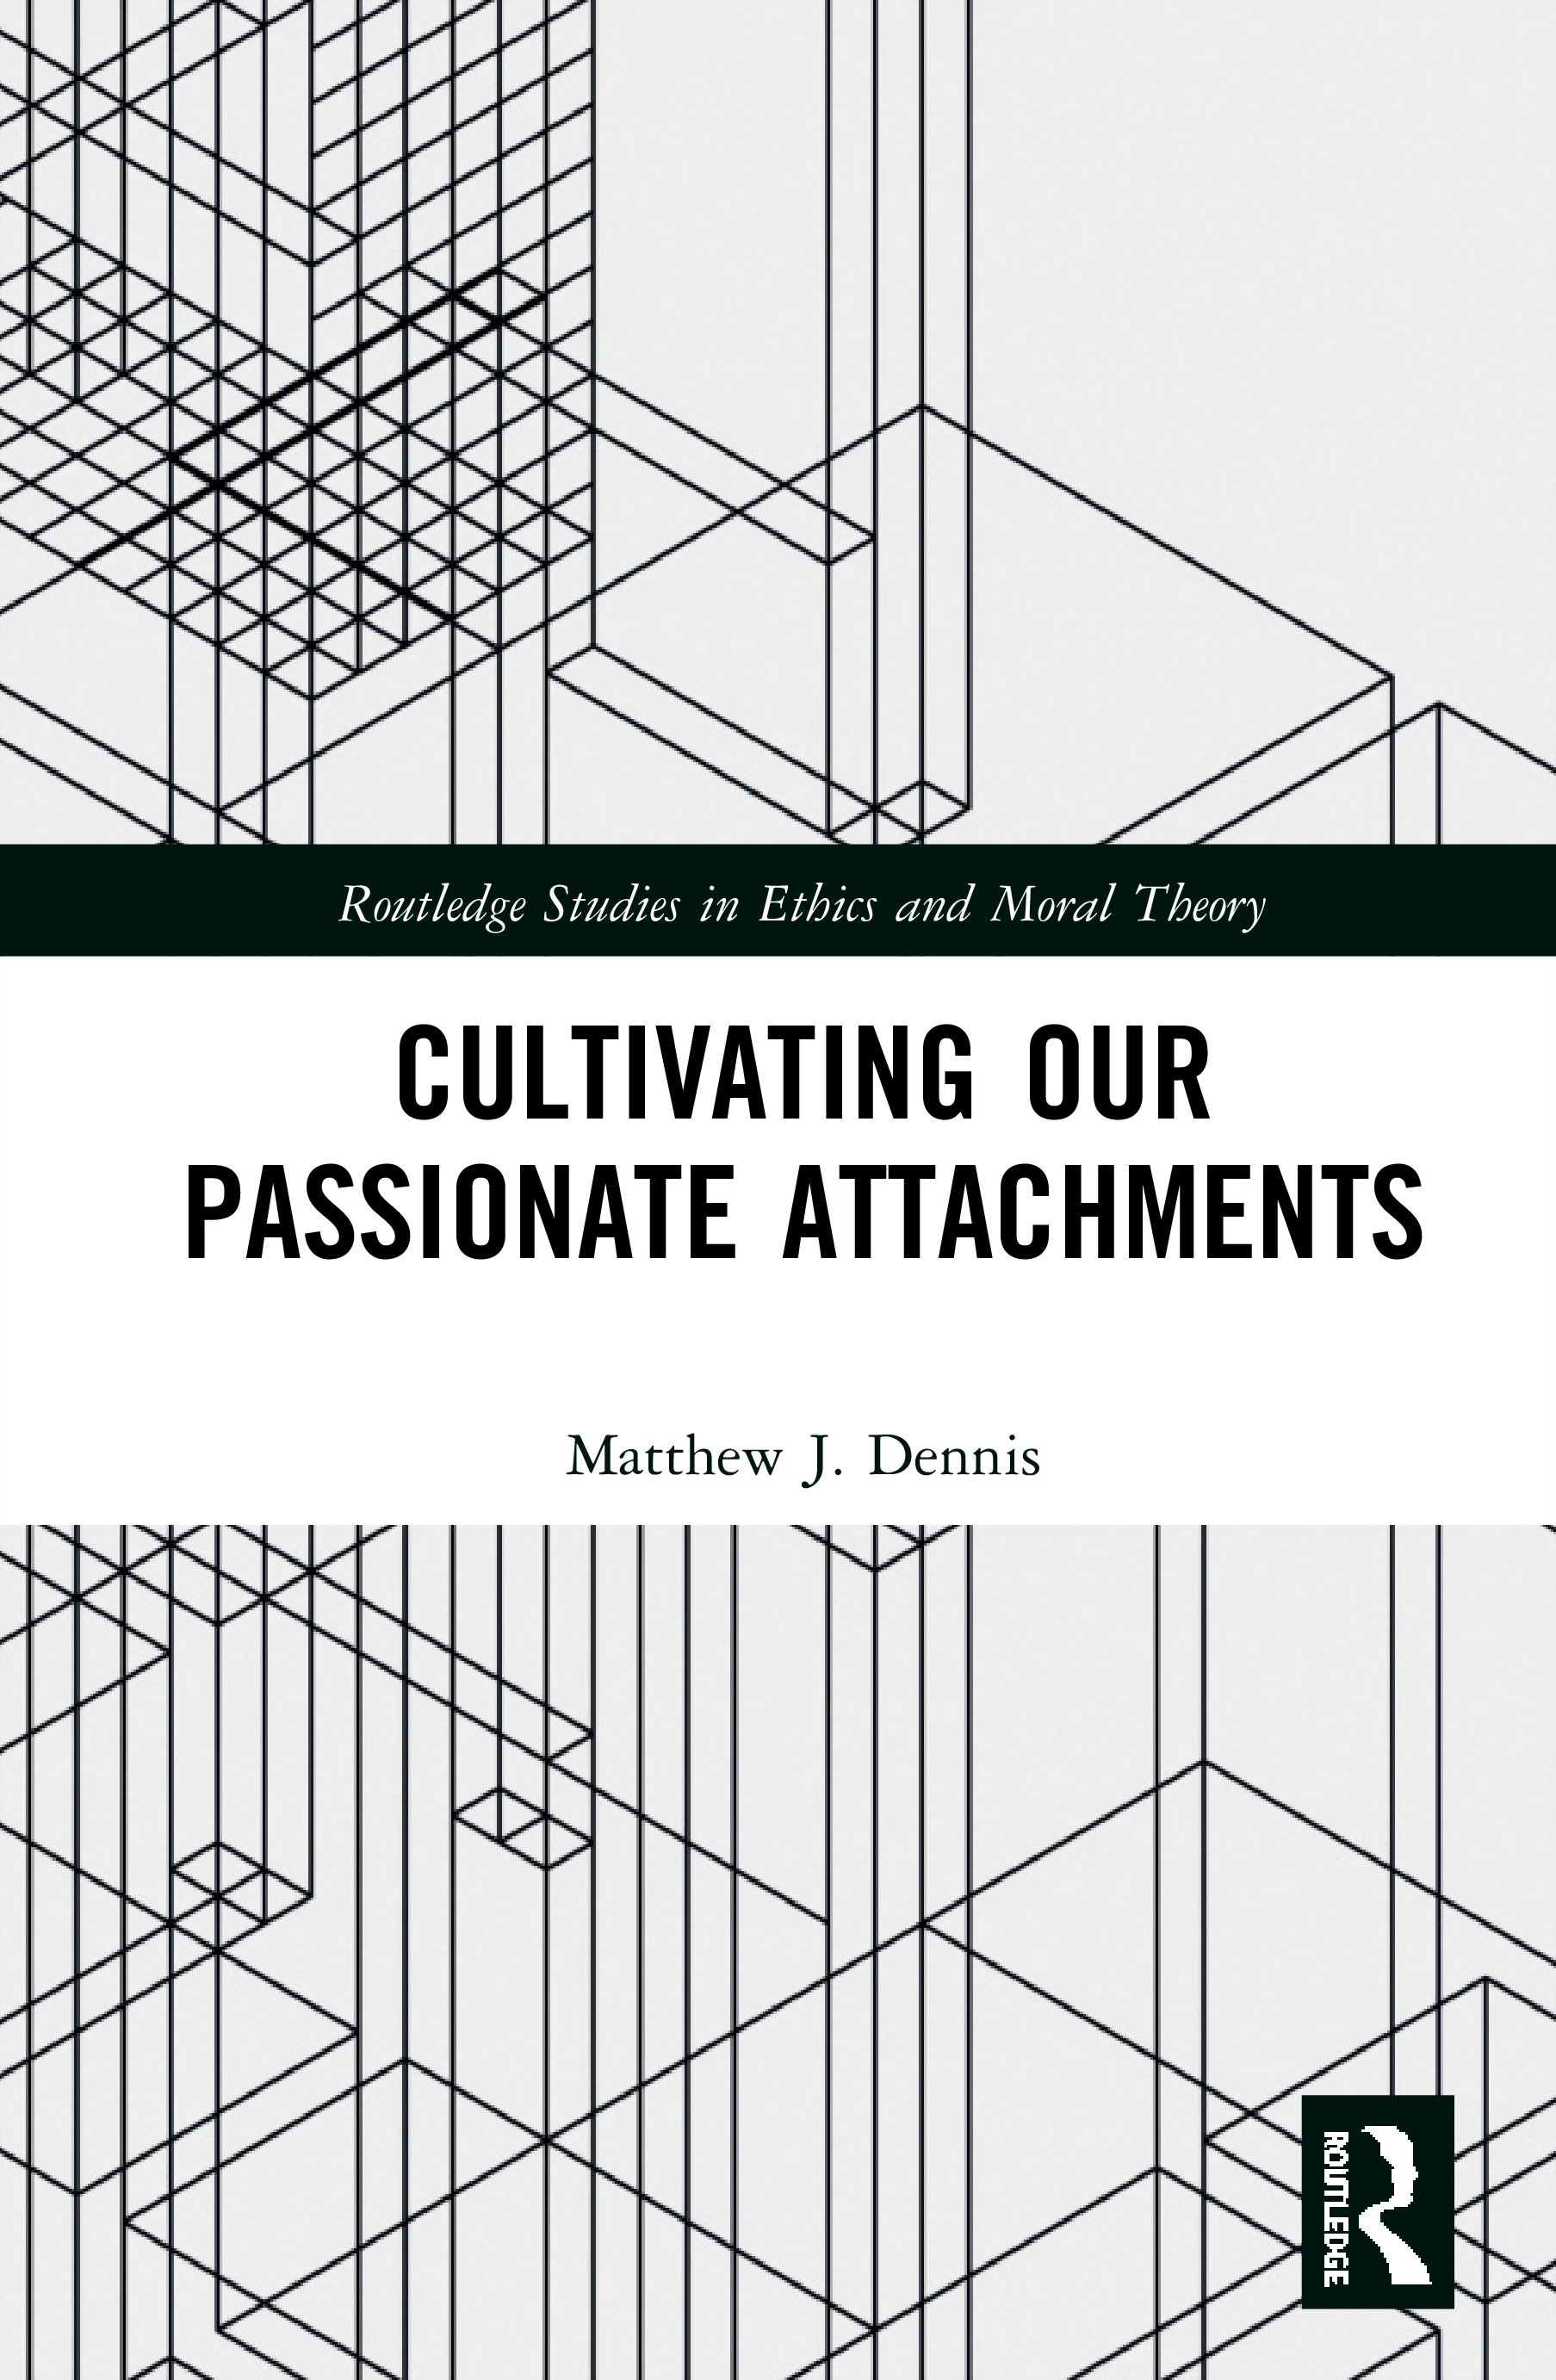 A Theory of Cultivating Our Passionate Attachments